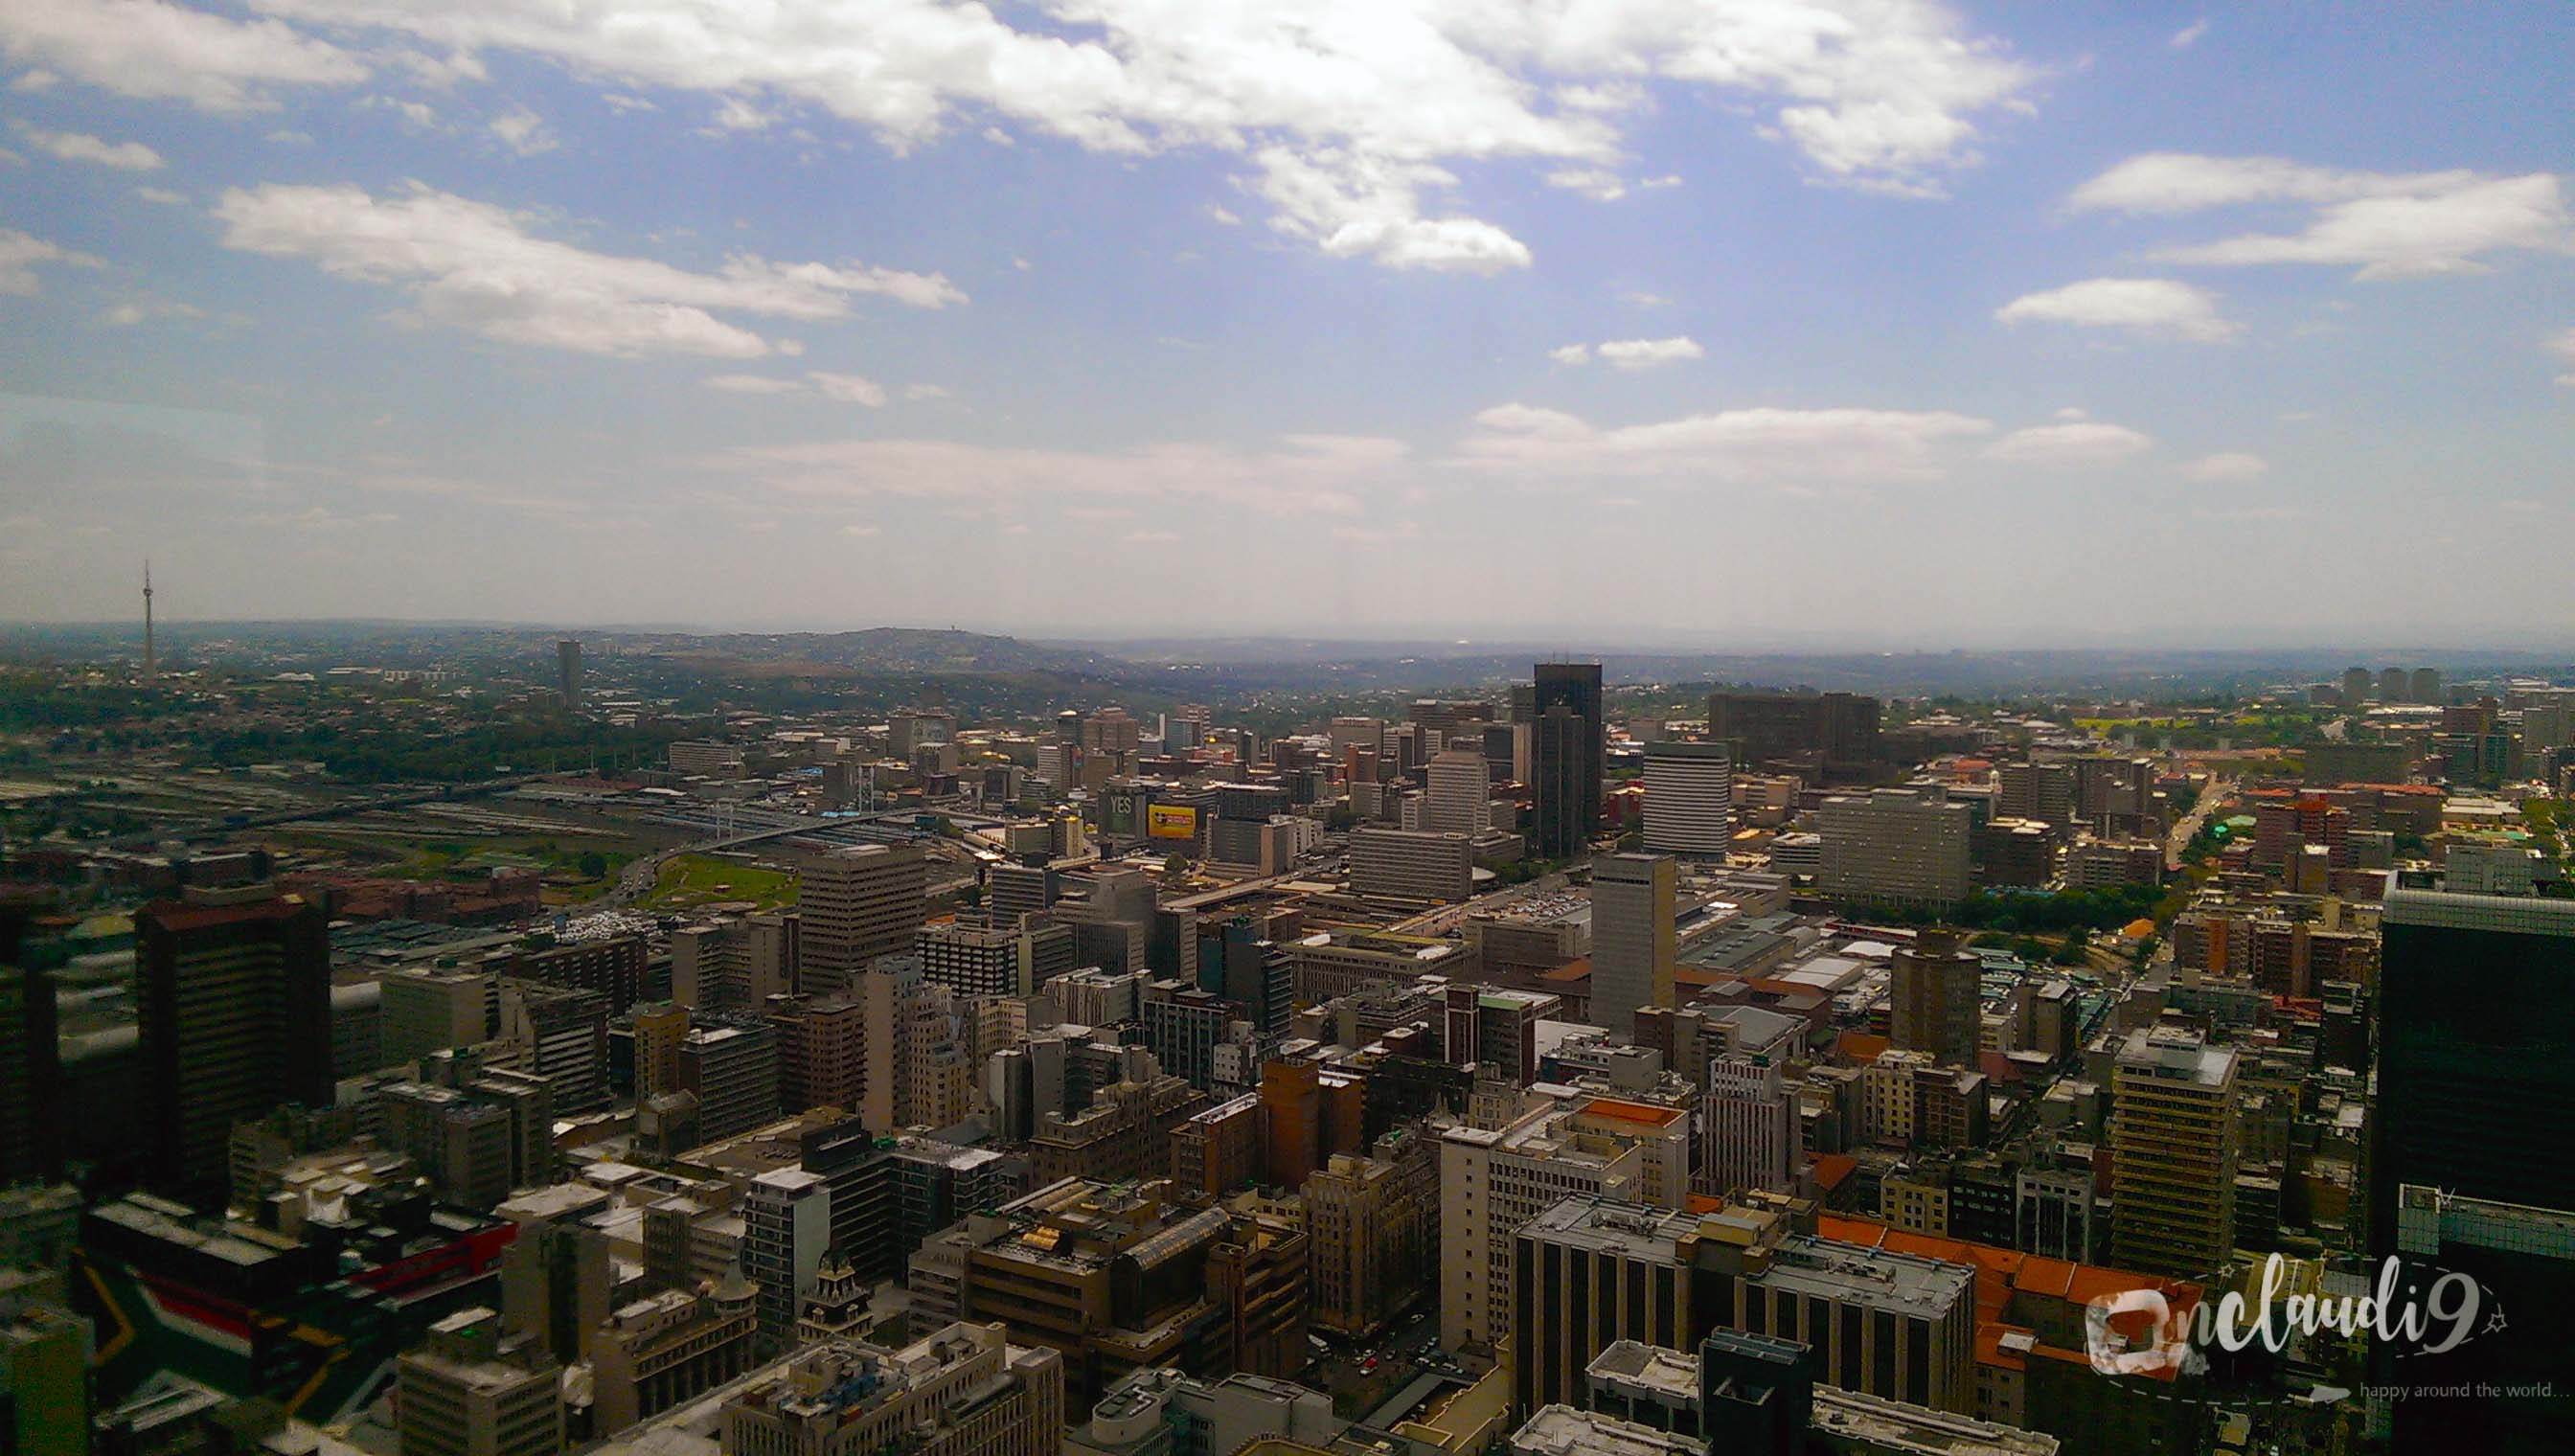 This is Carlton Center in Johannesburg. It is the highest building in the city.